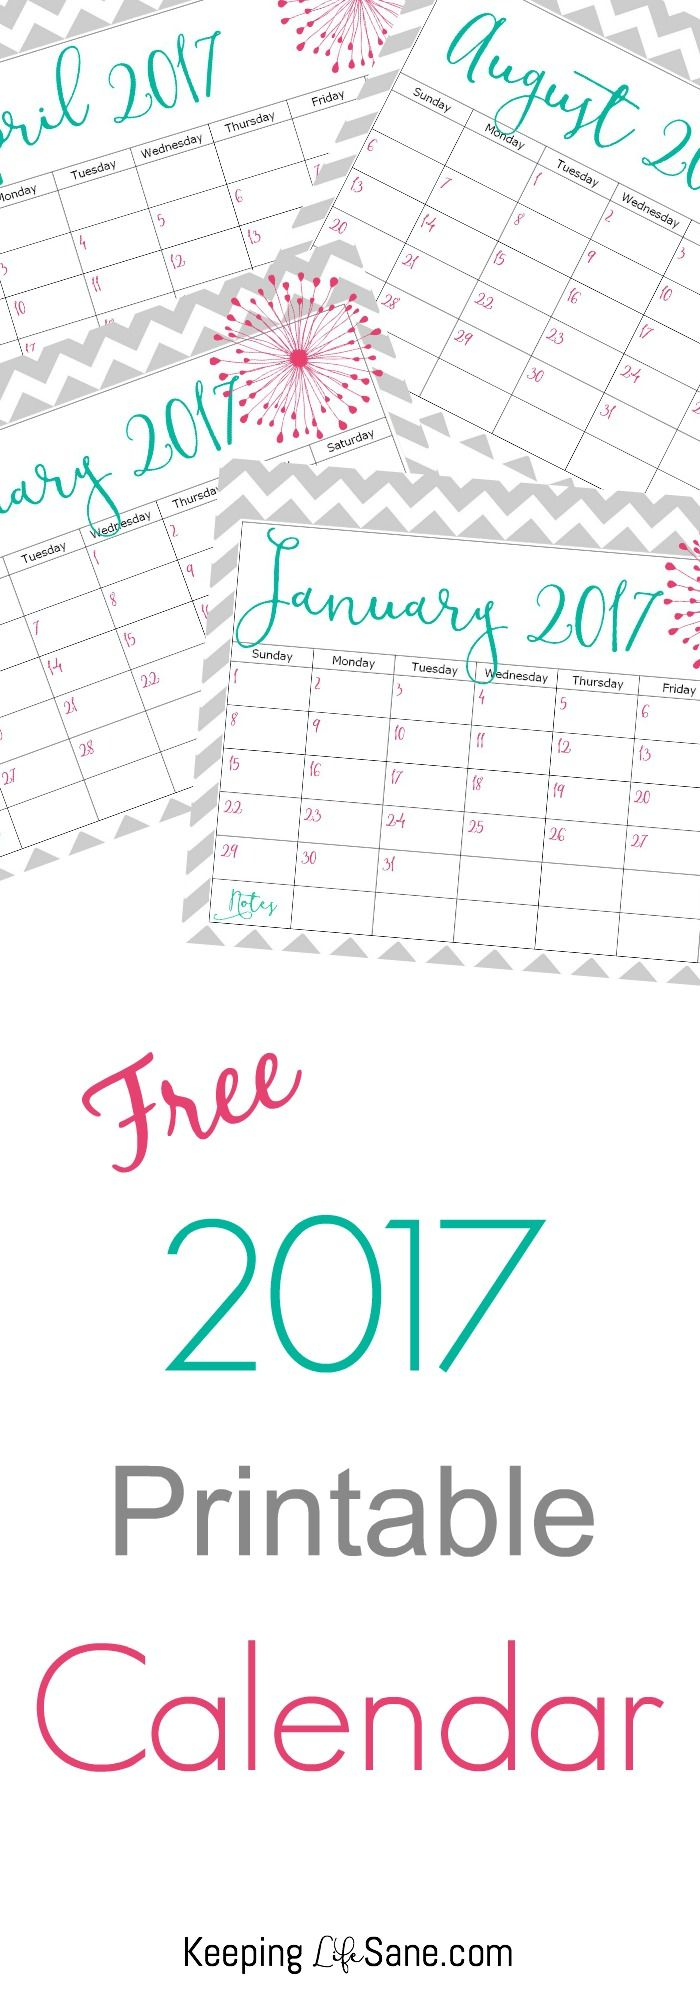 free 2017 printable calendar | keeping life sane- top posts